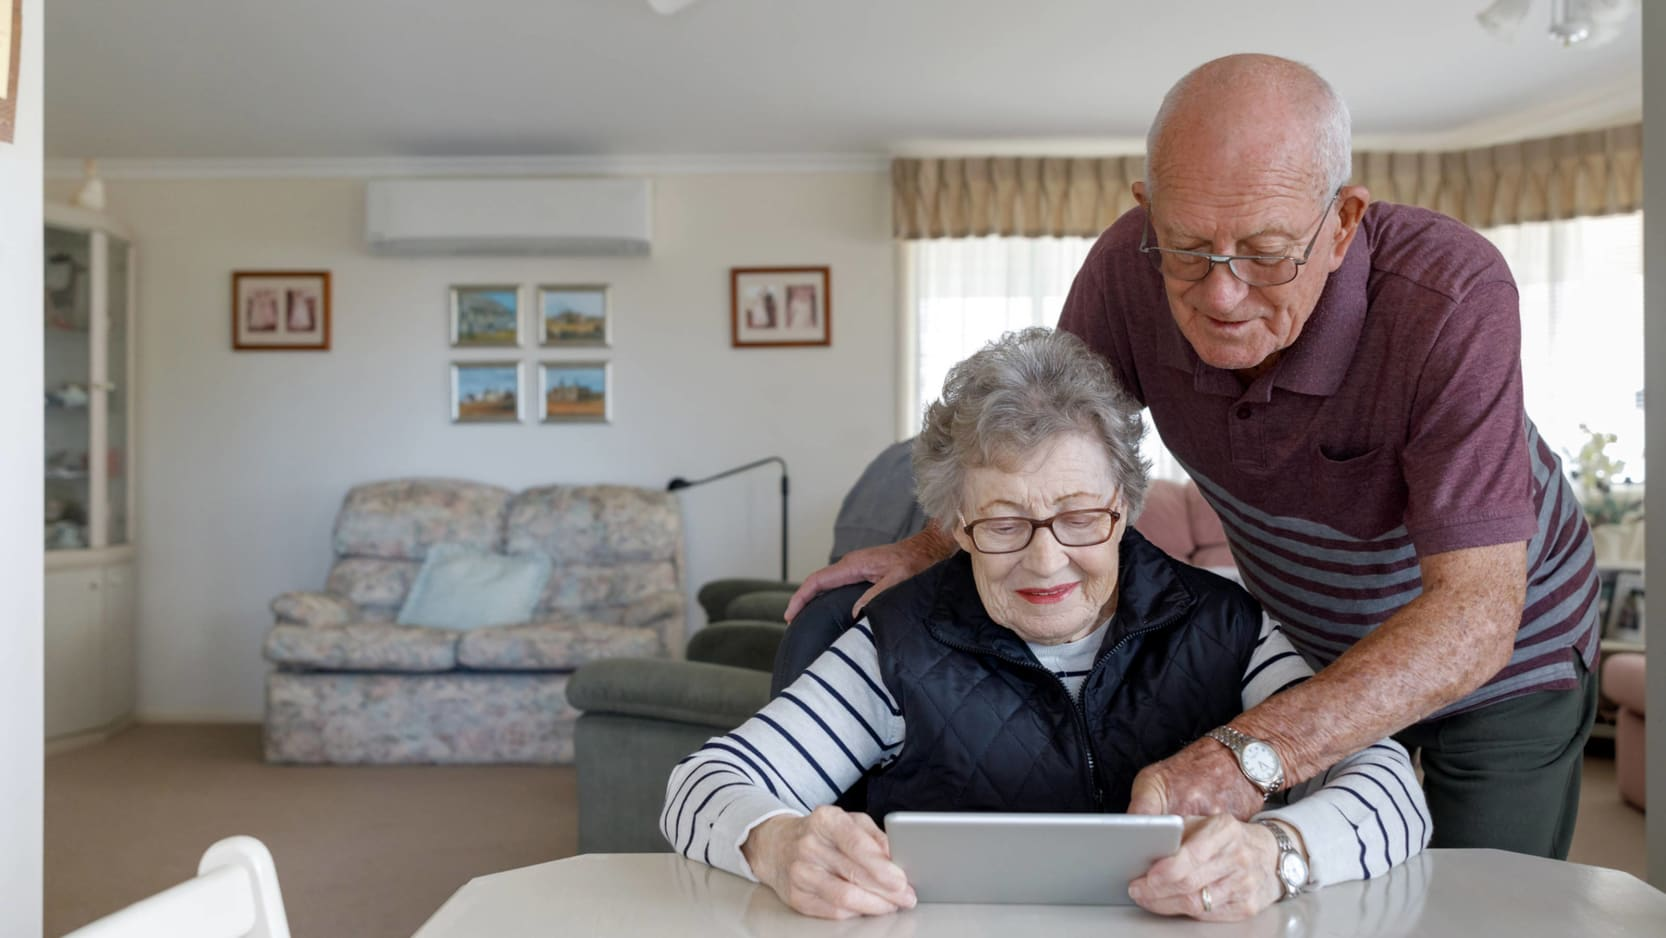 A senior woman at home sitting at a table looking at a tablet device. A senior man is leaning over her and pointing at the screen.